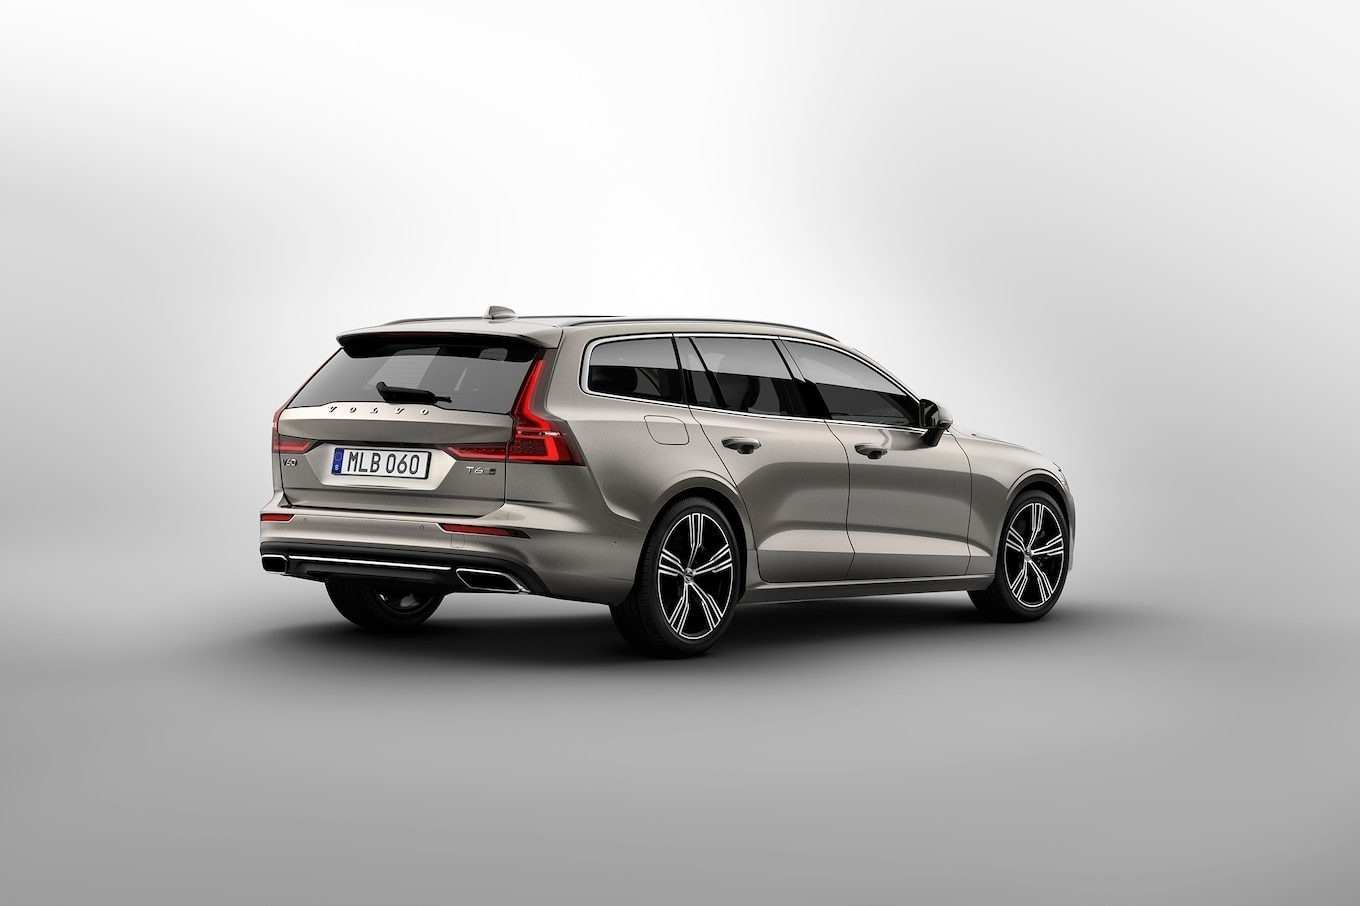 39 Best Review Volvo Xc70 Redesign Images for Volvo Xc70 Redesign